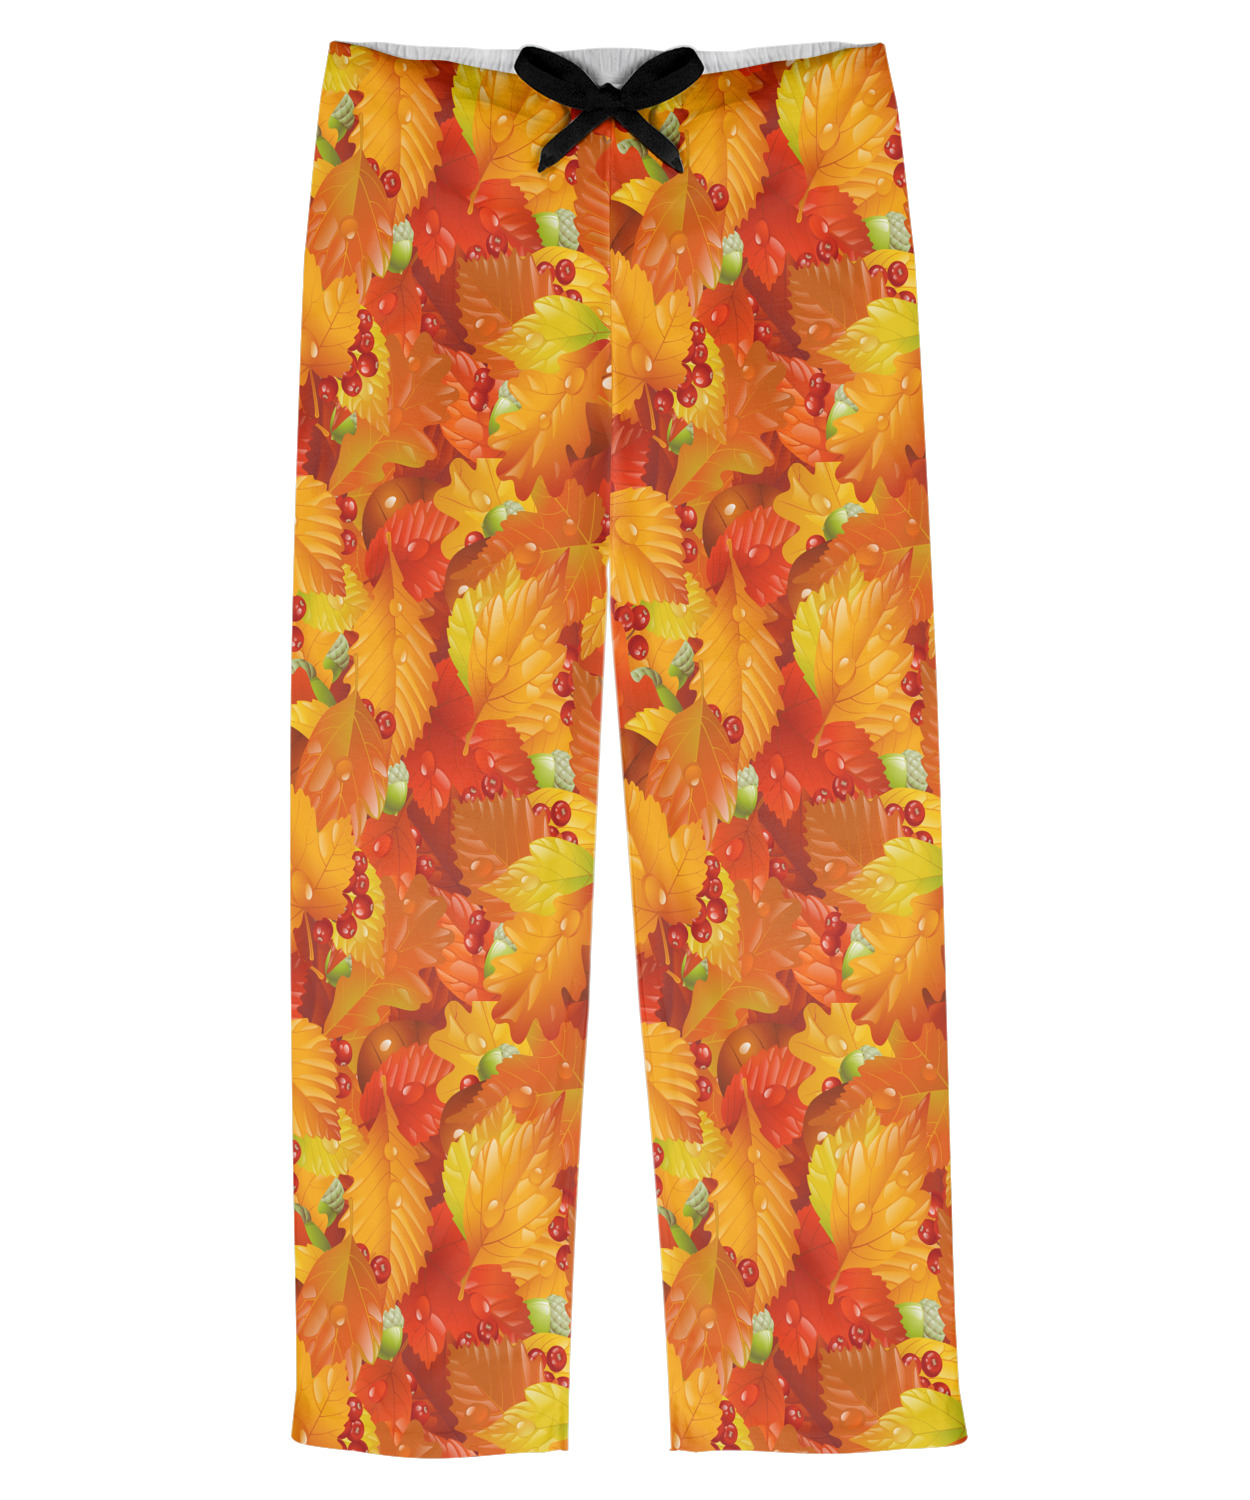 Fall Leaves Mens Pajama Pants - S - YouCustomizeIt 126066197